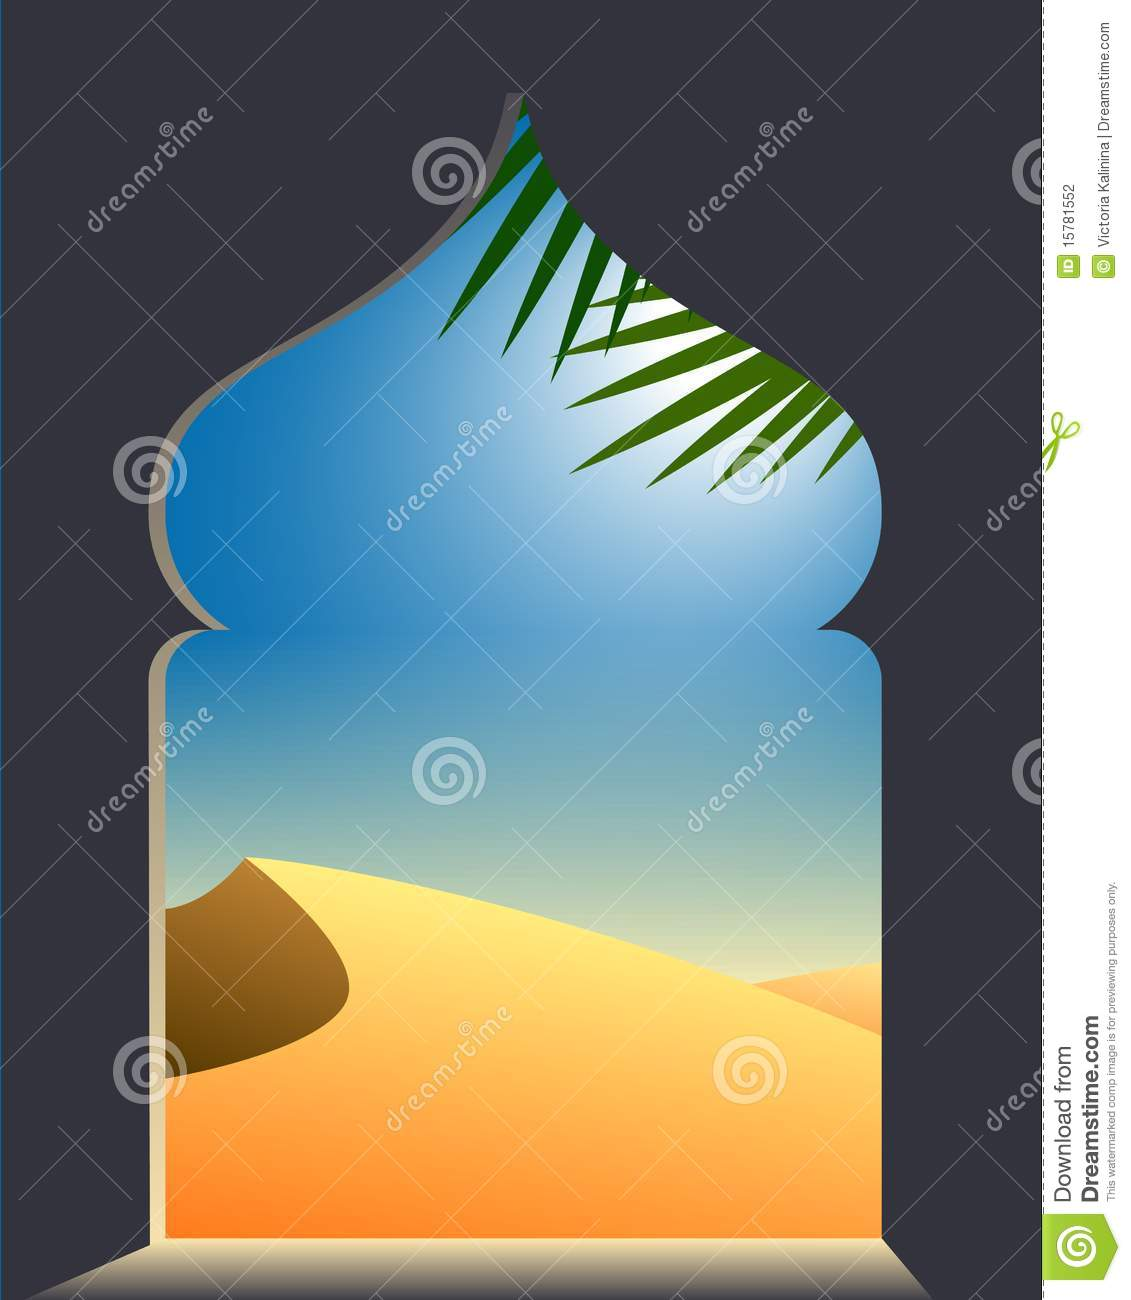 Arabian Desert clipart #14, Download drawings